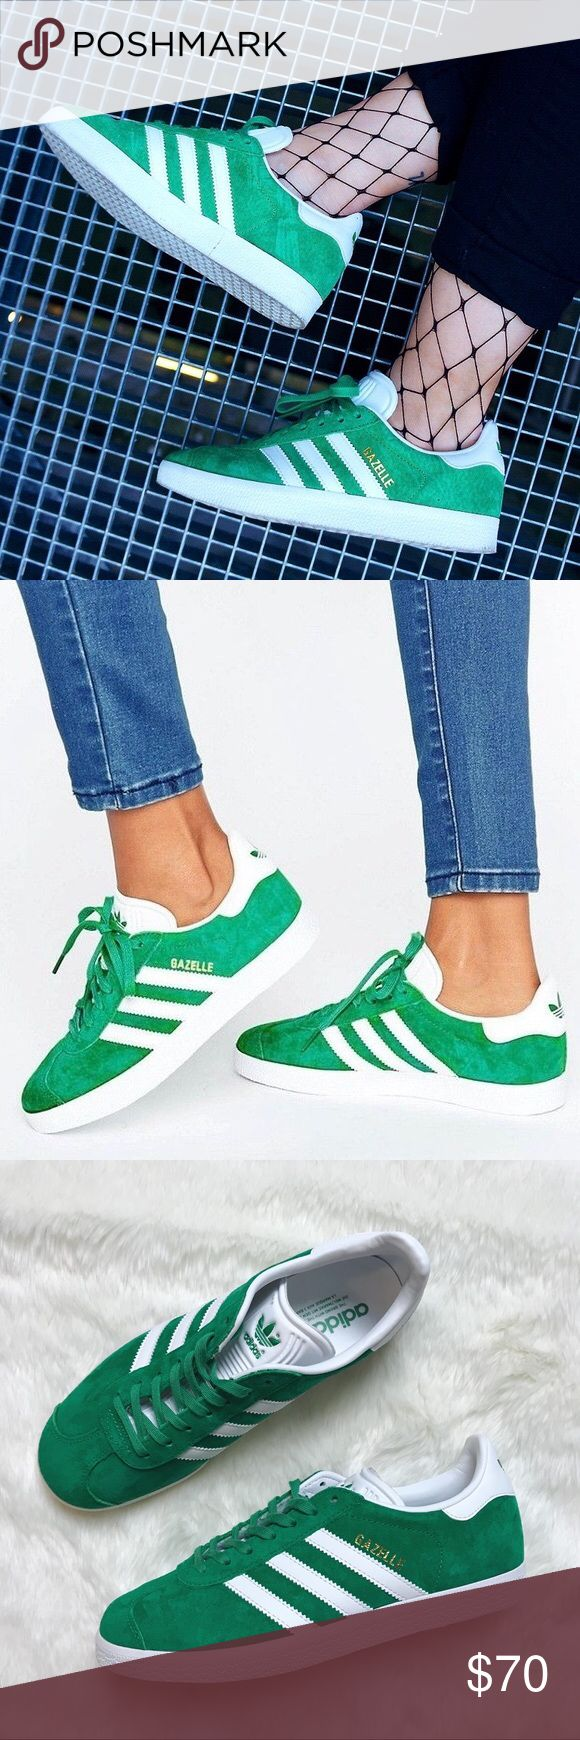 Adidas Green Suede Gazelle Sneakers •Green suede Adidas Gazelle sneakers.  •Mens size 6.5 = Womens 7.5. Runs large and would be best for a 8  •New in box, no lid.  •No trades, no holds. adidas Shoes Sneakers #sneakersadidas #MensFashionSneakers